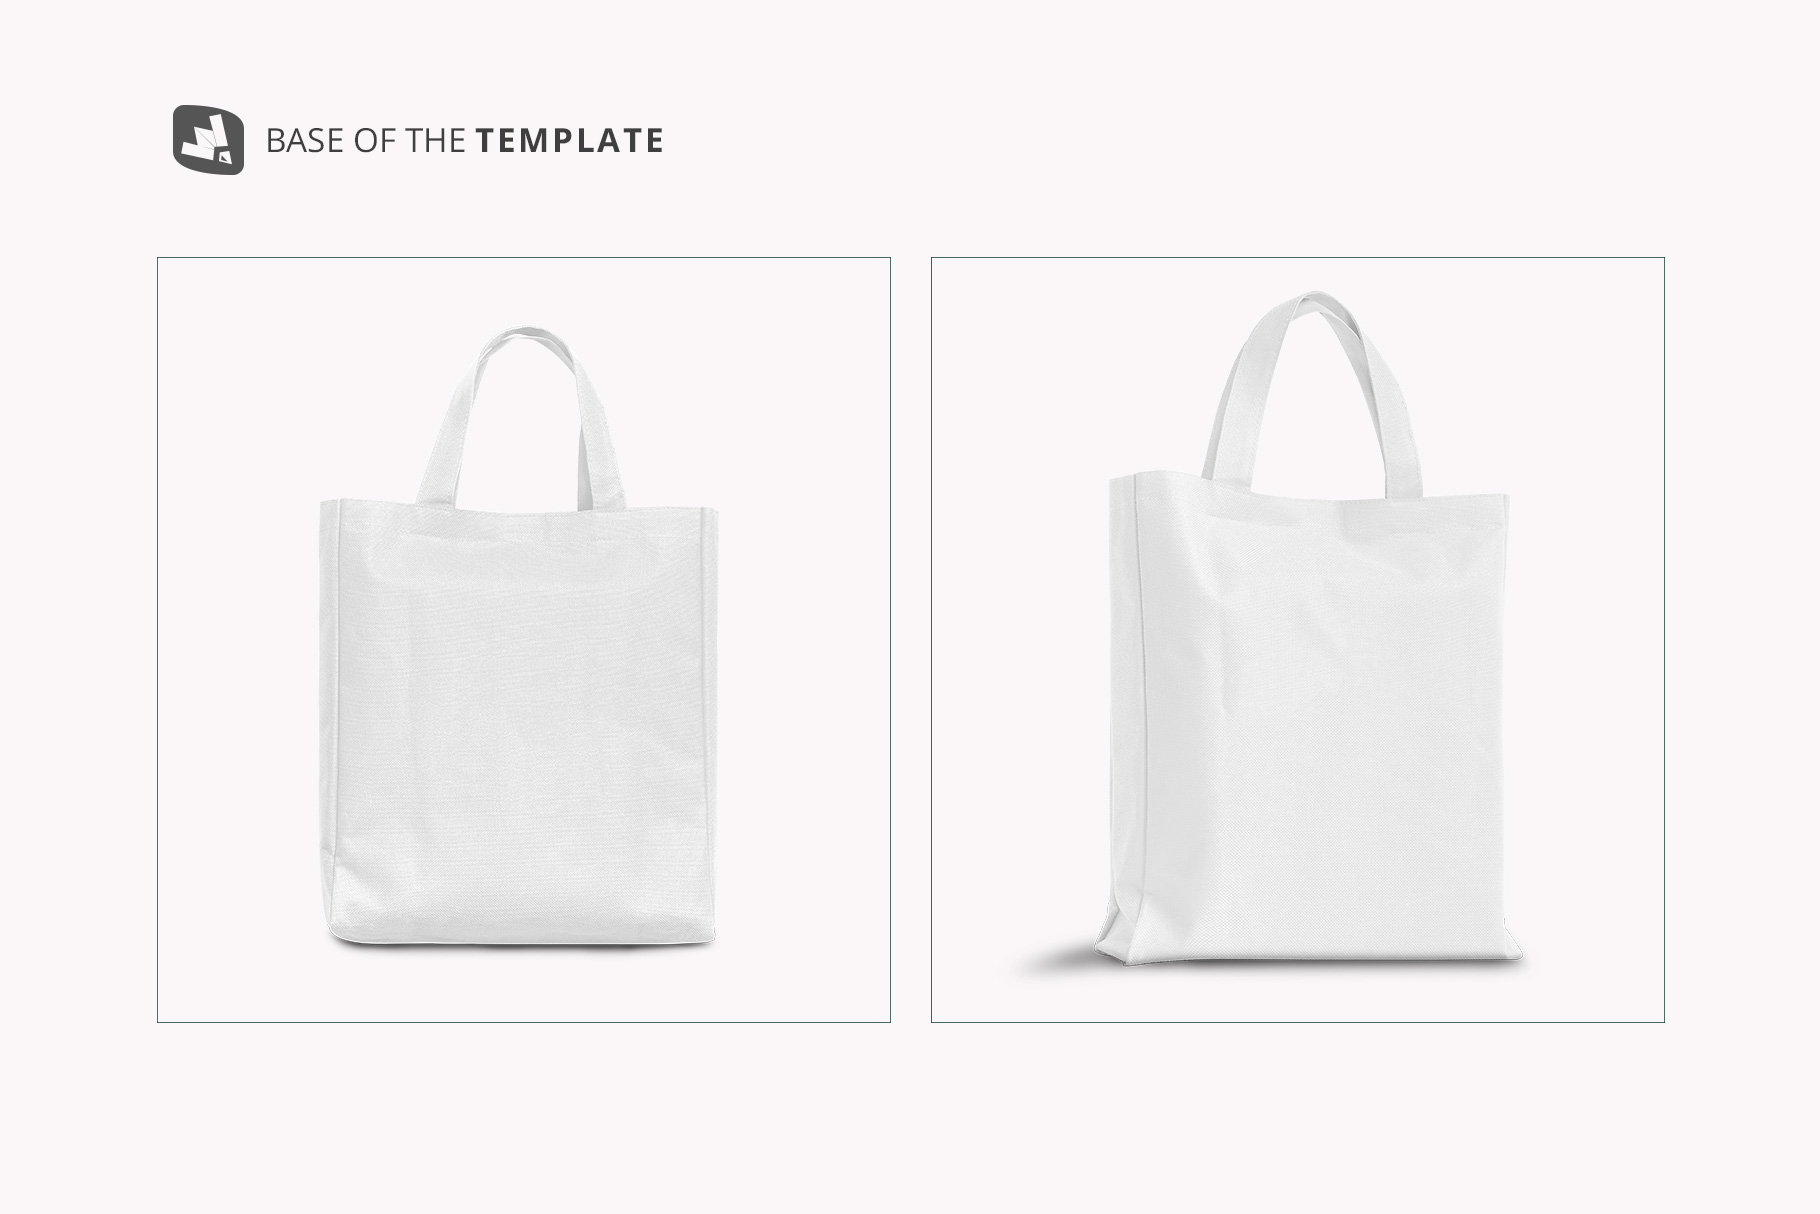 base image of the front view canvas bag mockup